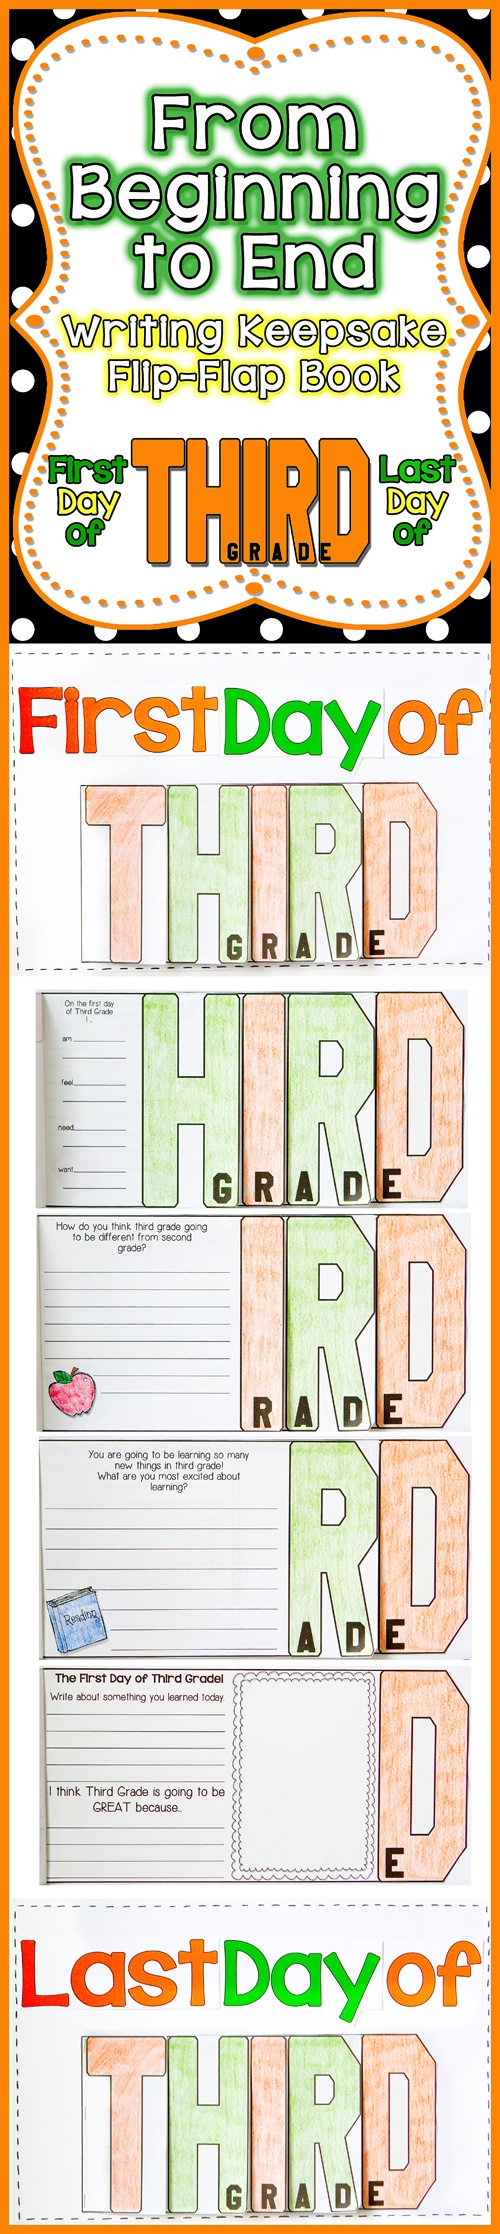 FUN, Interactive, and a great Keepsake for your parents. Have your students create a T-H-I-R-D Grade Flip-Flap Writing Keepsake on the First Day of School and the Last Day of School. Parents will cherish it for years to come!$